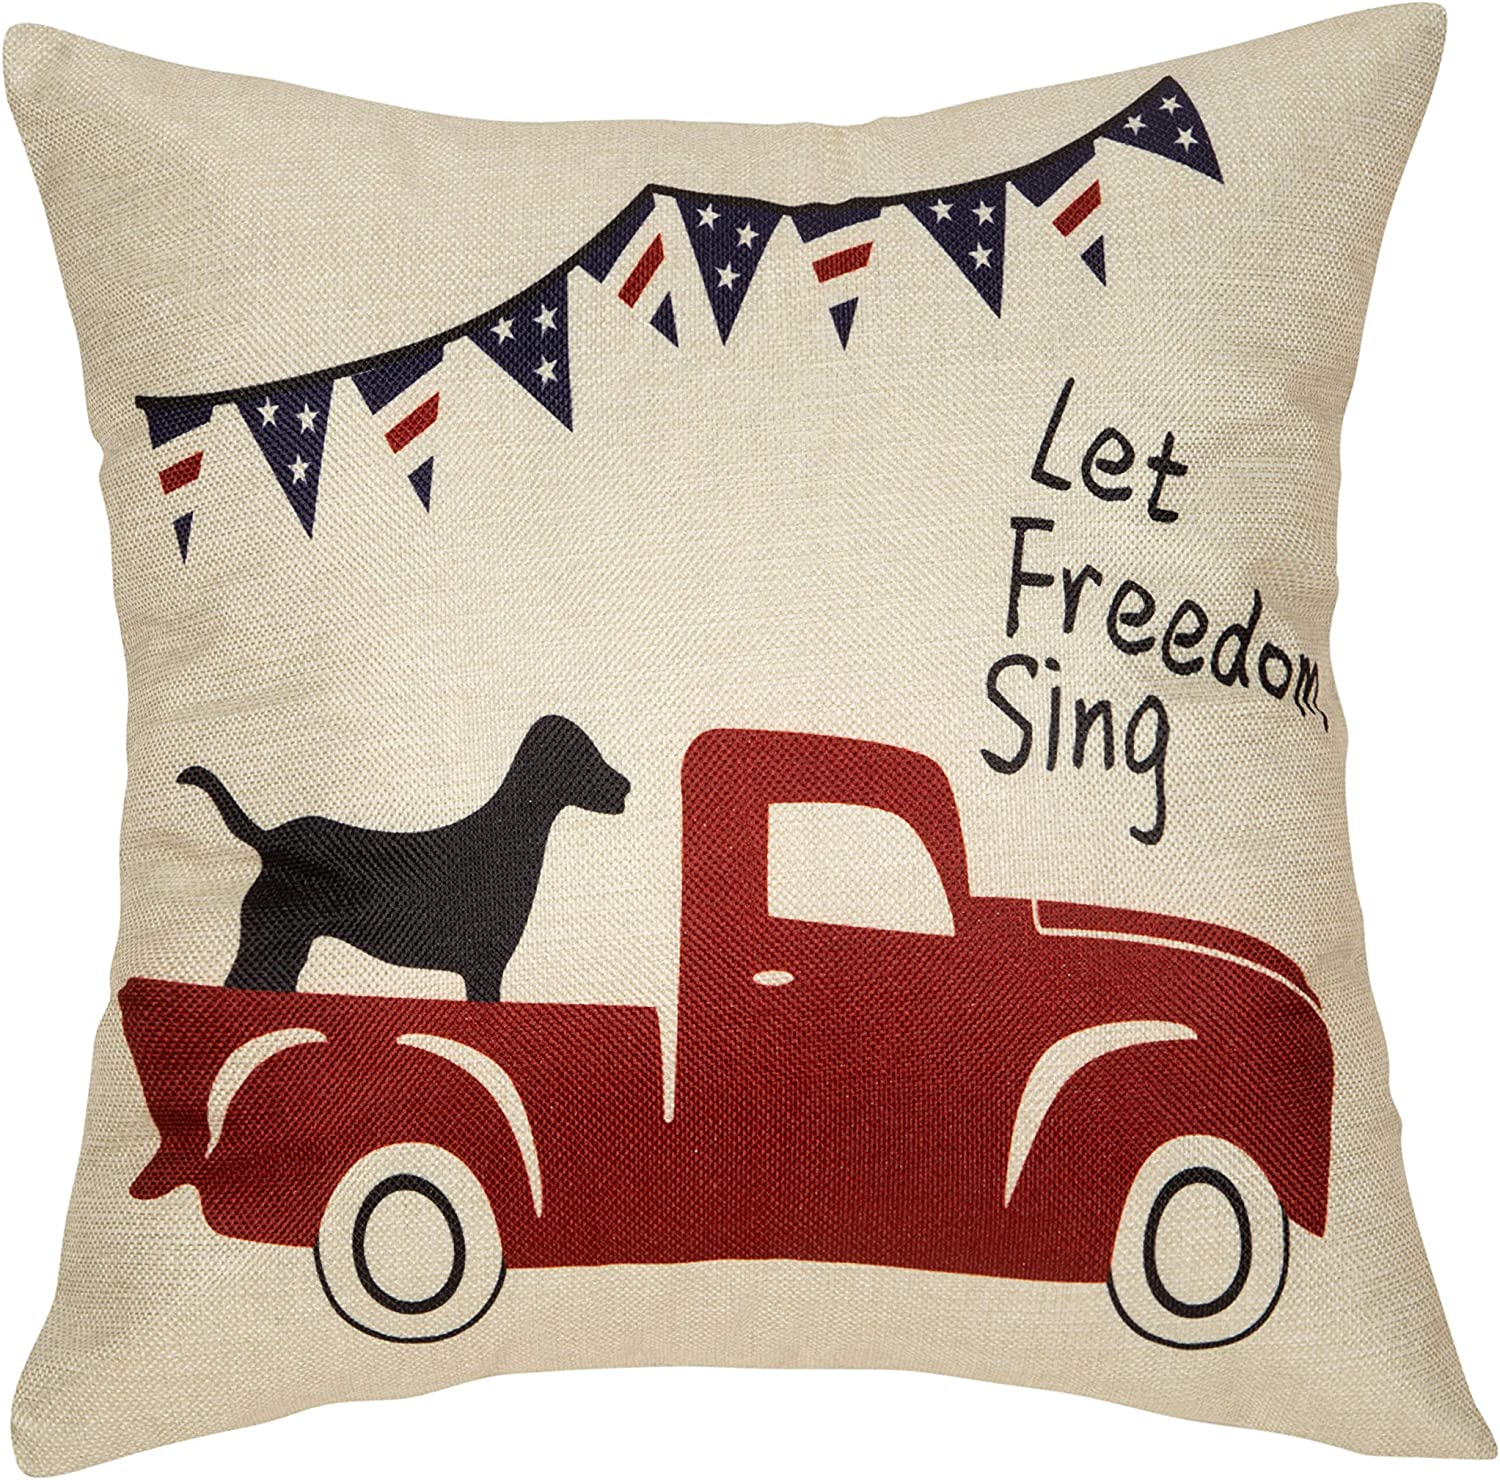 "Fjfz July 4th Farmhouse Decorative Throw Pillow Cover Let Freedom Sing Patriotic Quote Sign Decoration Vintage Red Truck with Dog Rustic Home Decor Cotton Linen Cushion Case for Sofa Couch, 18"" x 18"""